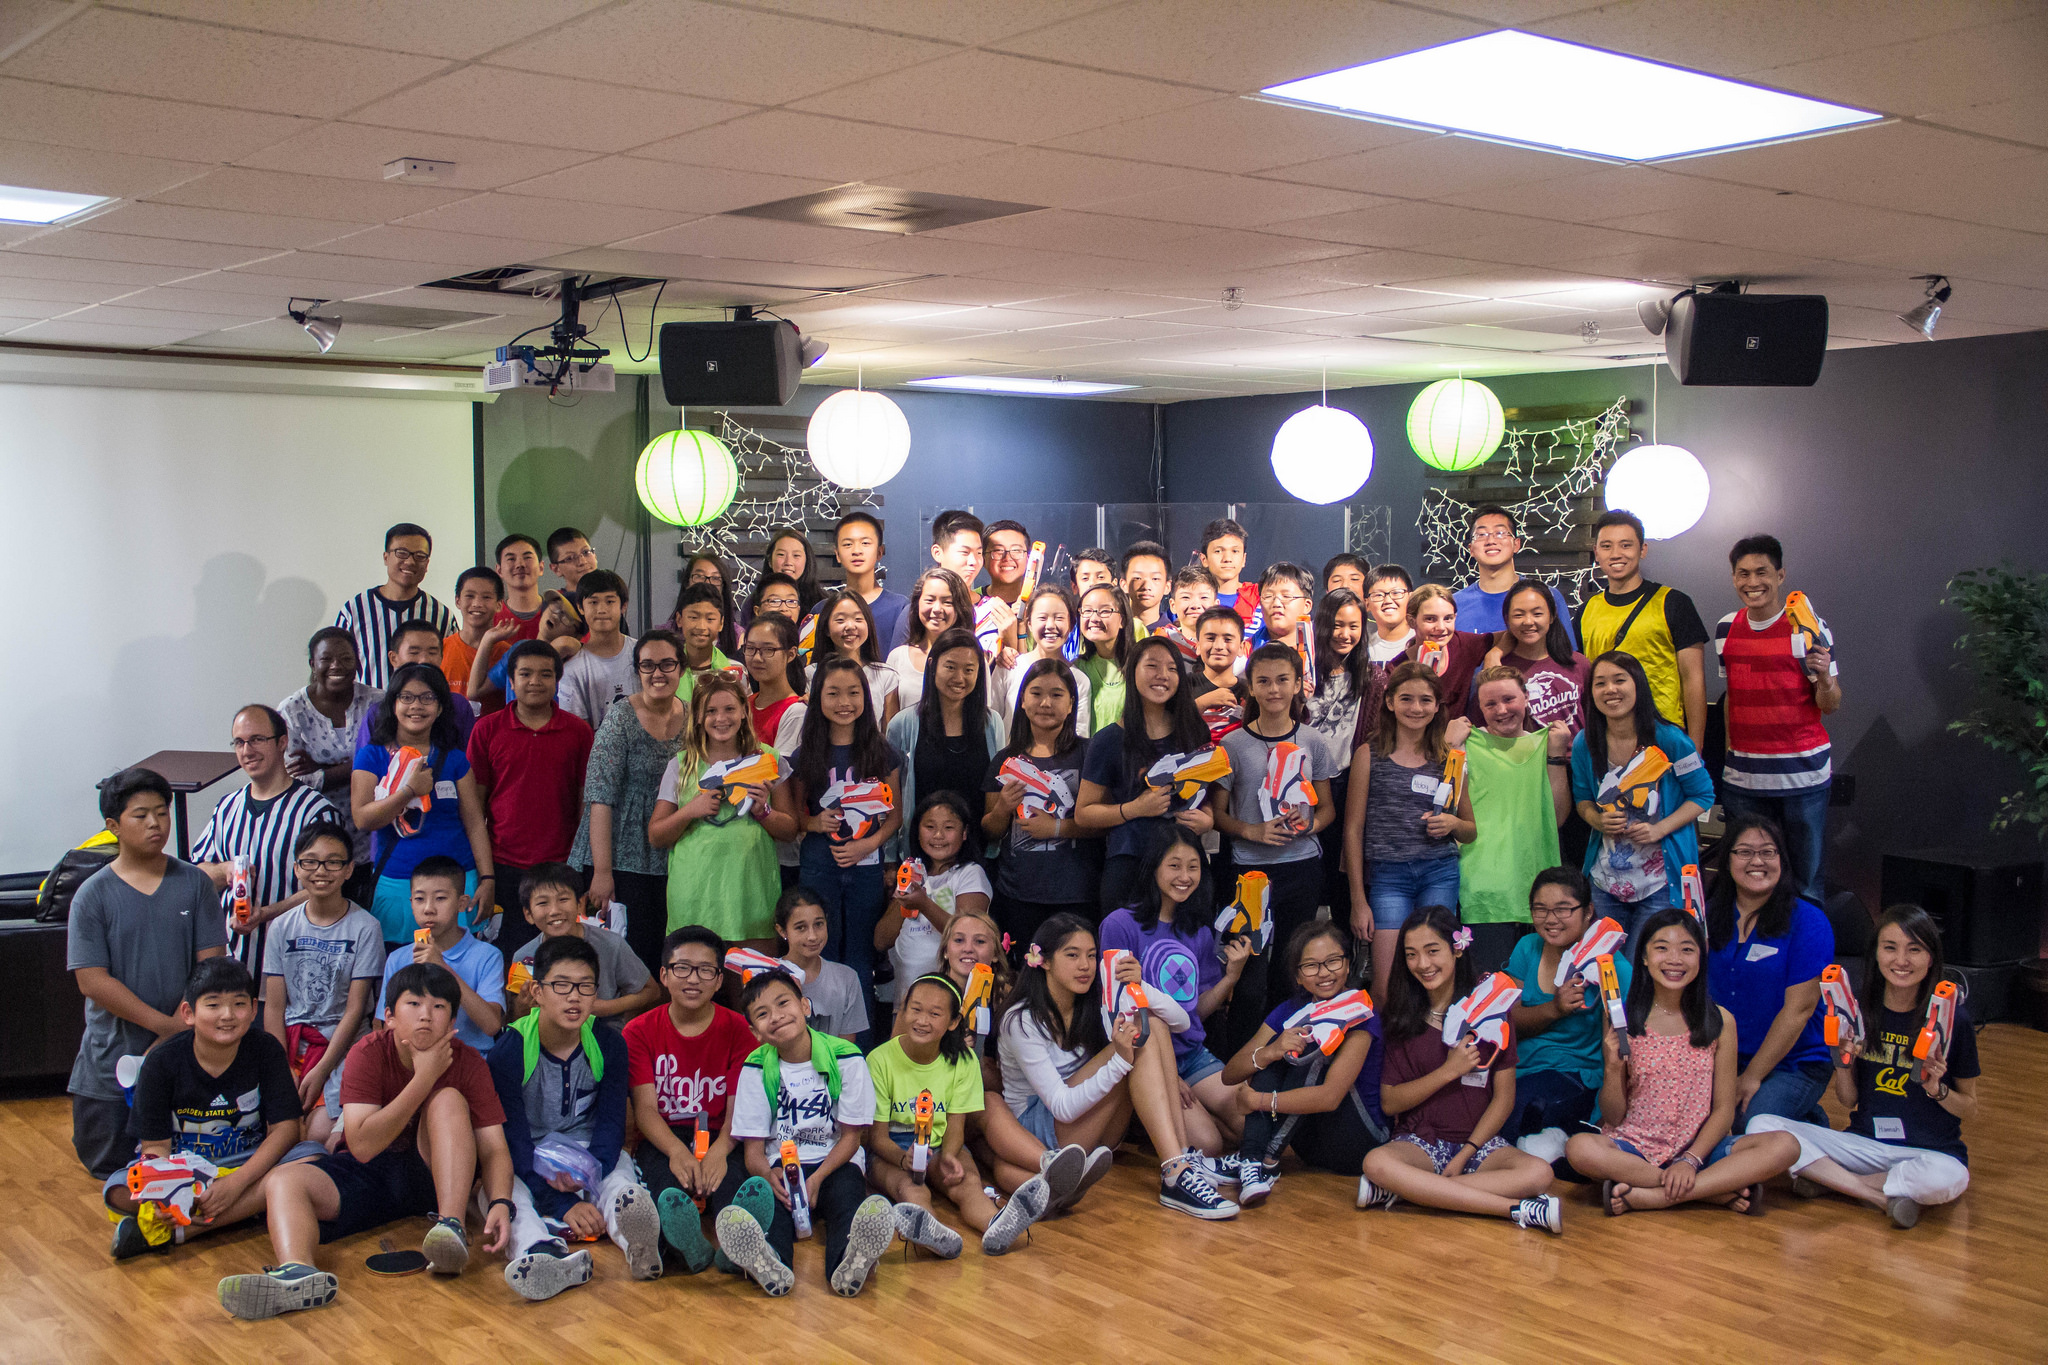 We ended the Large Group night together with a big group picture!